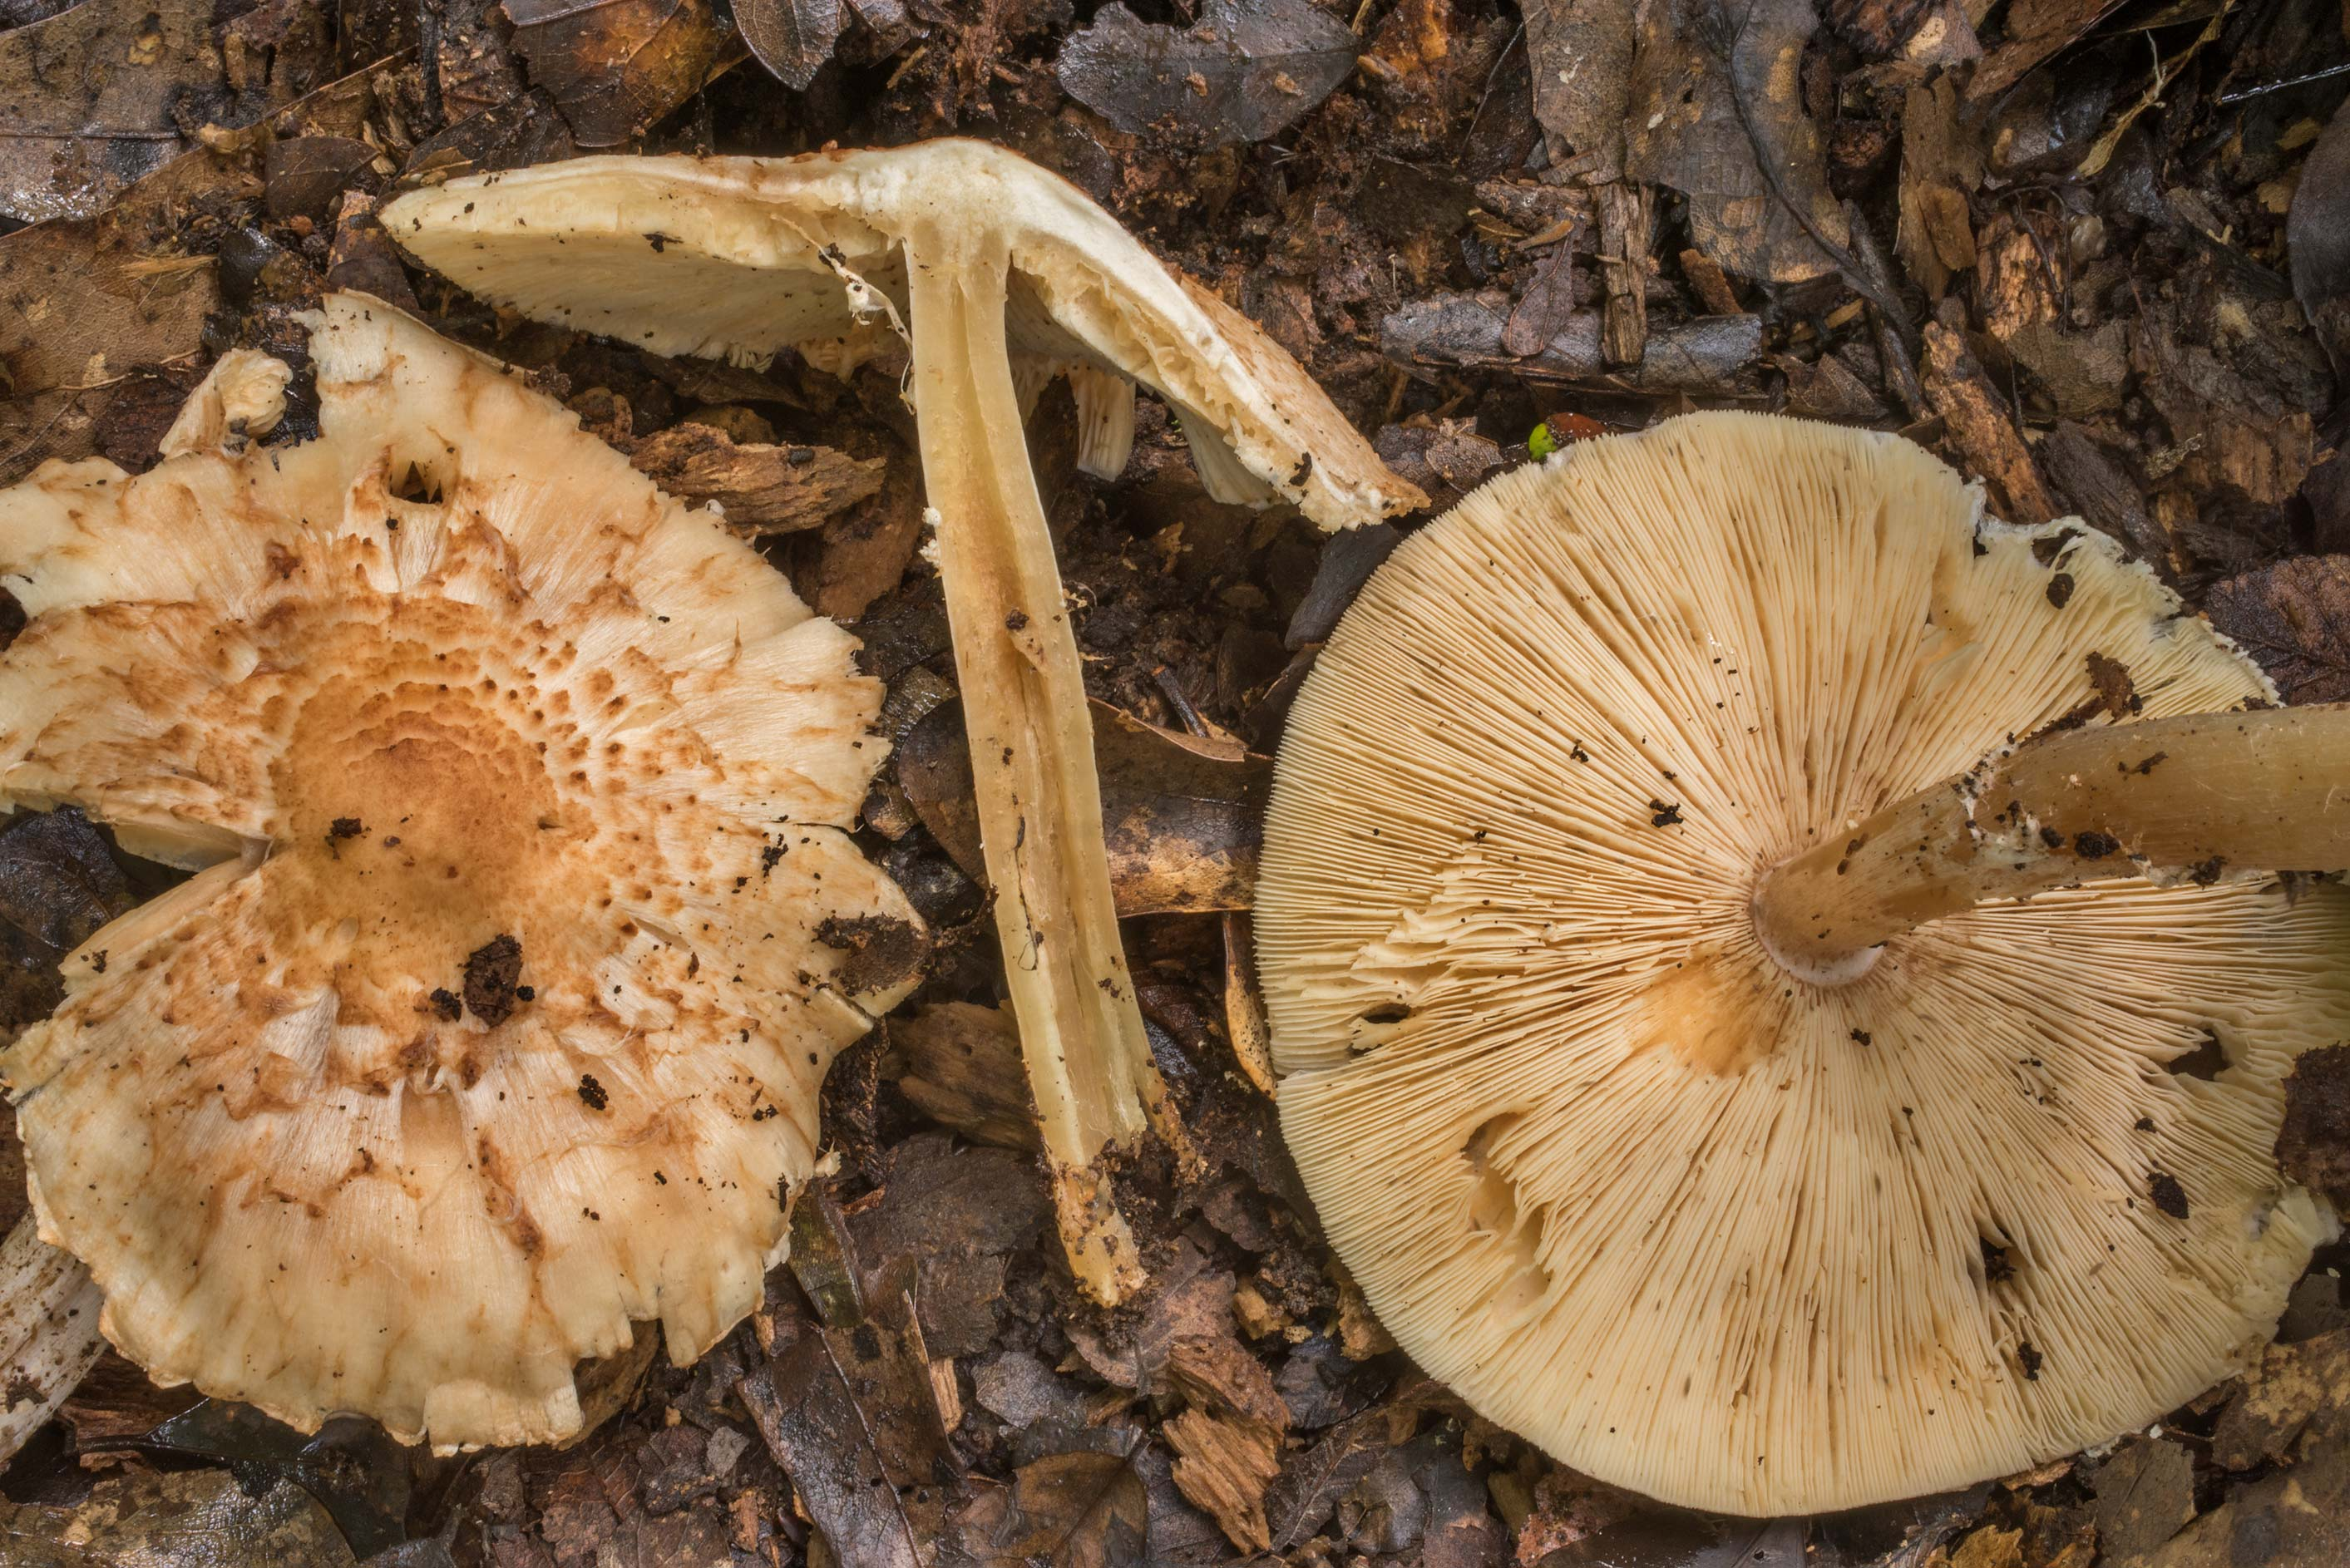 Dissected scaly mushrooms with crowded gills on...Creek Park. College Station, Texas